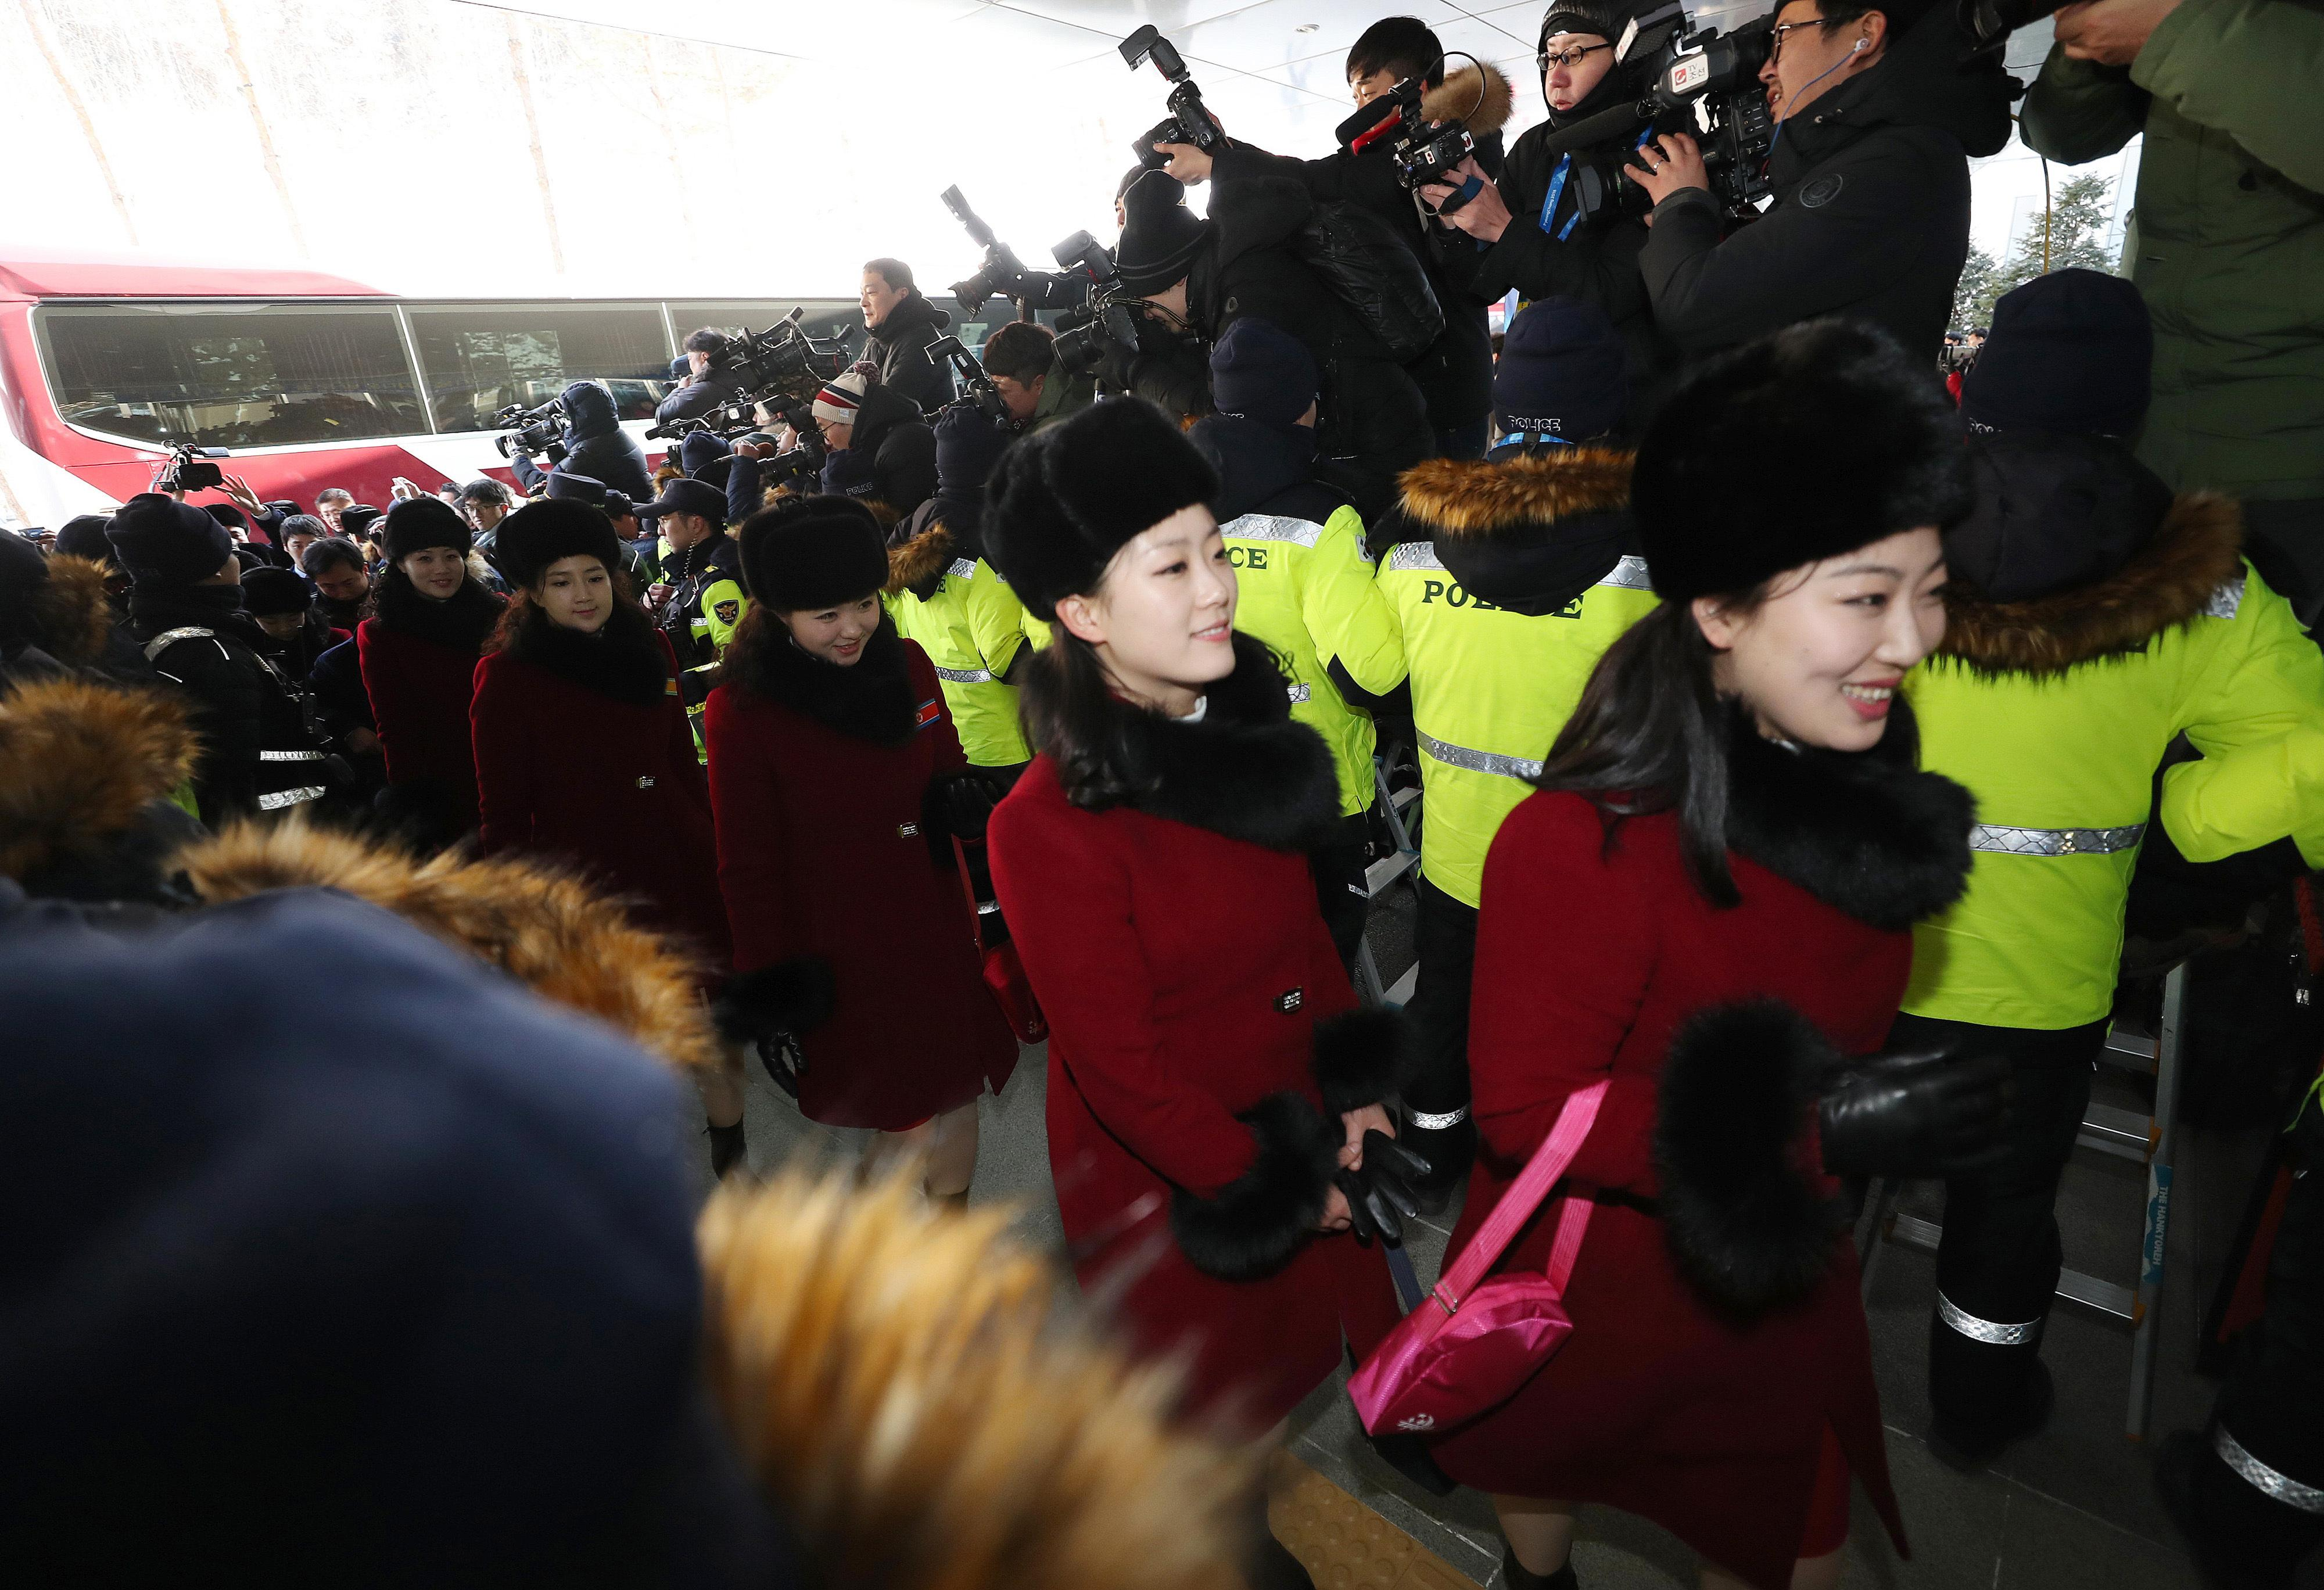 North Korean cheering squads arrive at a stadium in Inje, South Korea, Wednesday, Feb. 7, 2018. A North Korean delegation, including members of a state-trained cheering group, arrived in South Korea on Wednesday for the Pyeongchang Winter Olympics. (Yang Yong-suk/Yonhap AP)